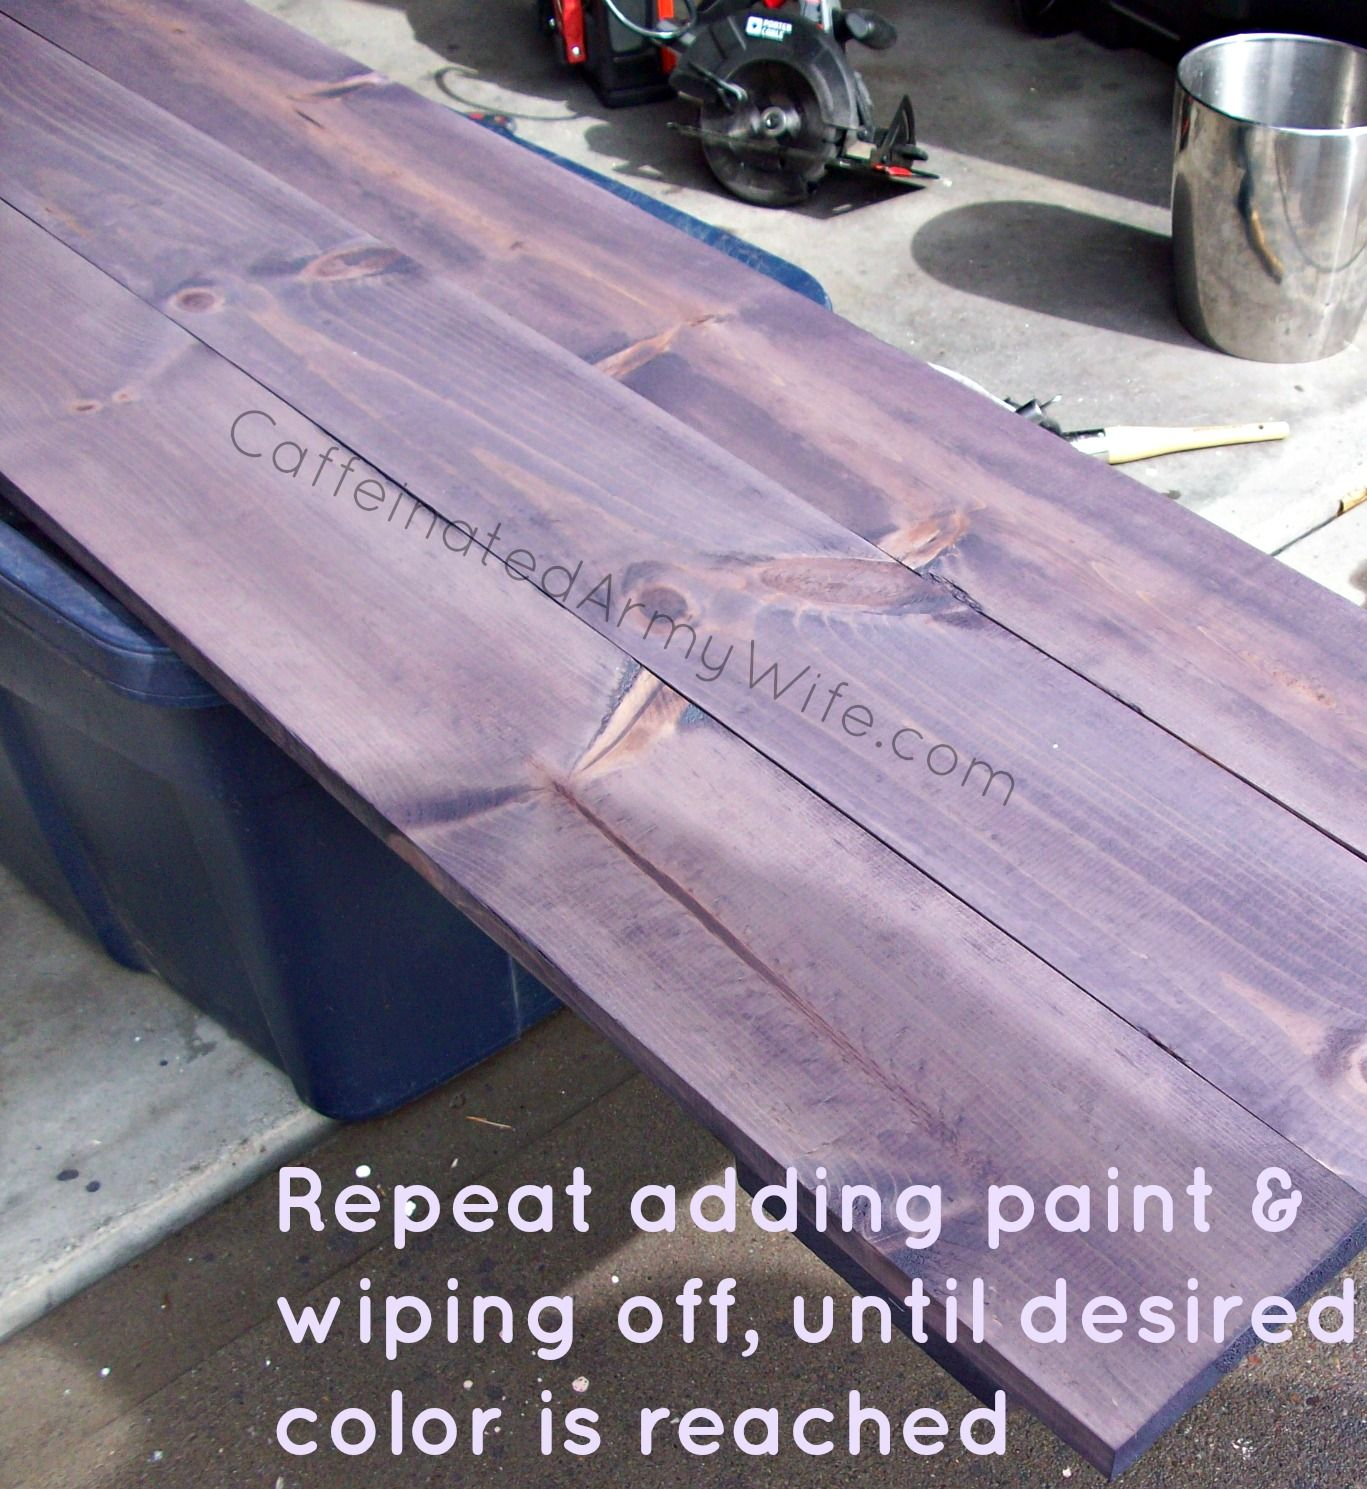 Purple Wood Mix Paint And Water On Wipe Repeat As Color Gets Darker